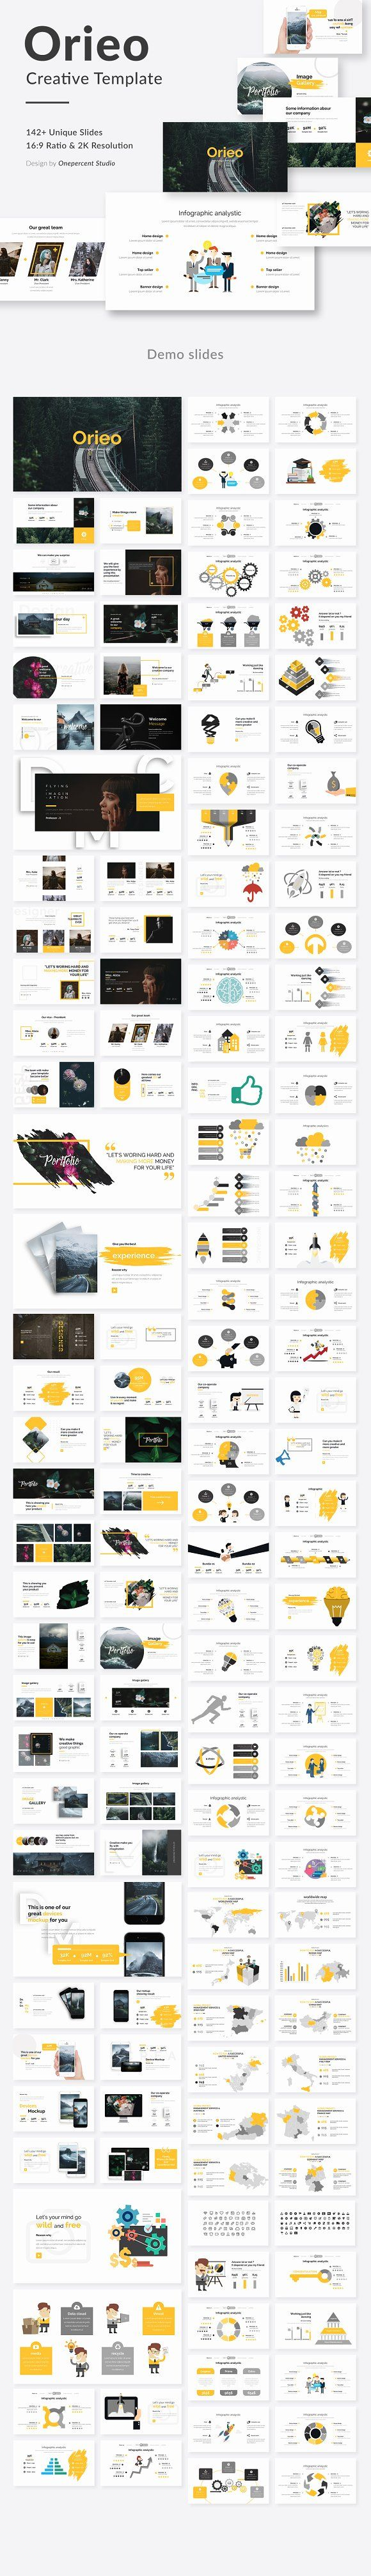 Oreo Creative Google Slide Template by One Percent Studio on @creativemarket